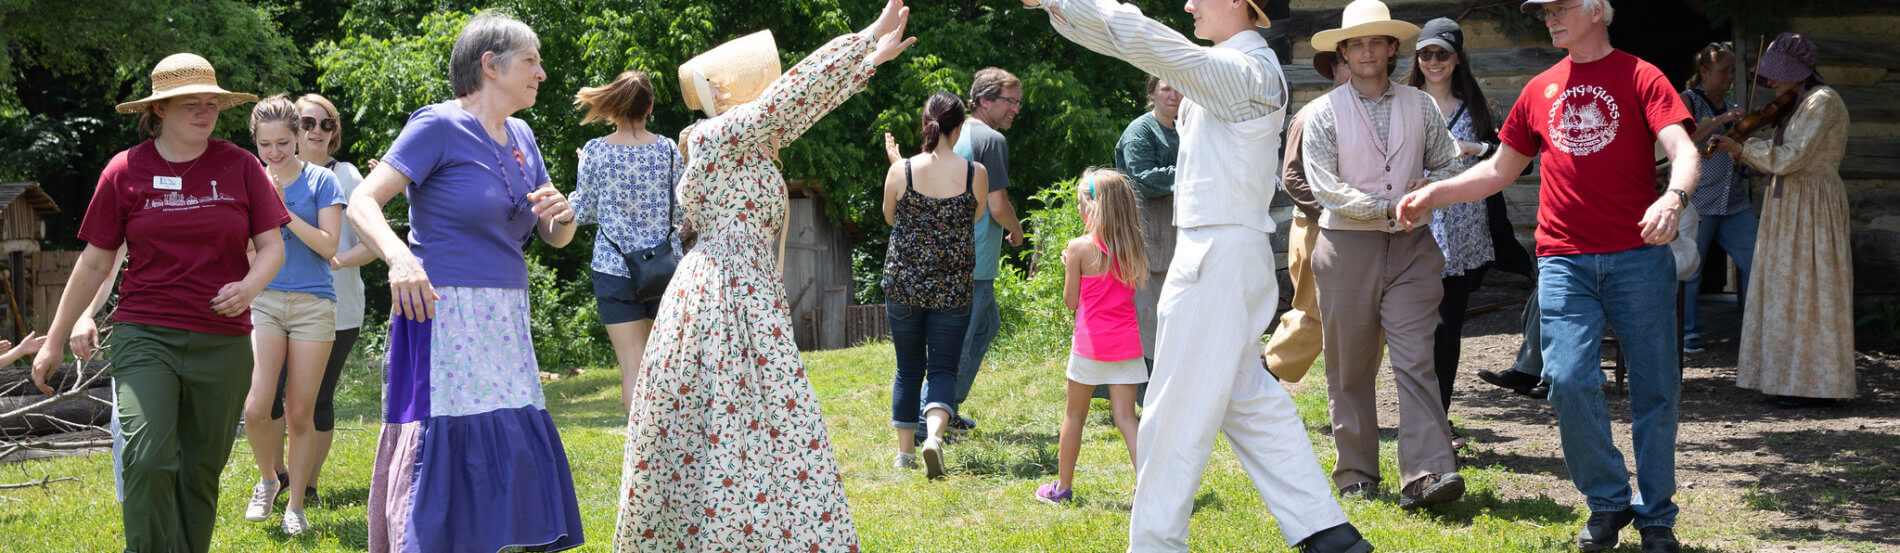 interpreters and visitors dance at the pioneer wedding